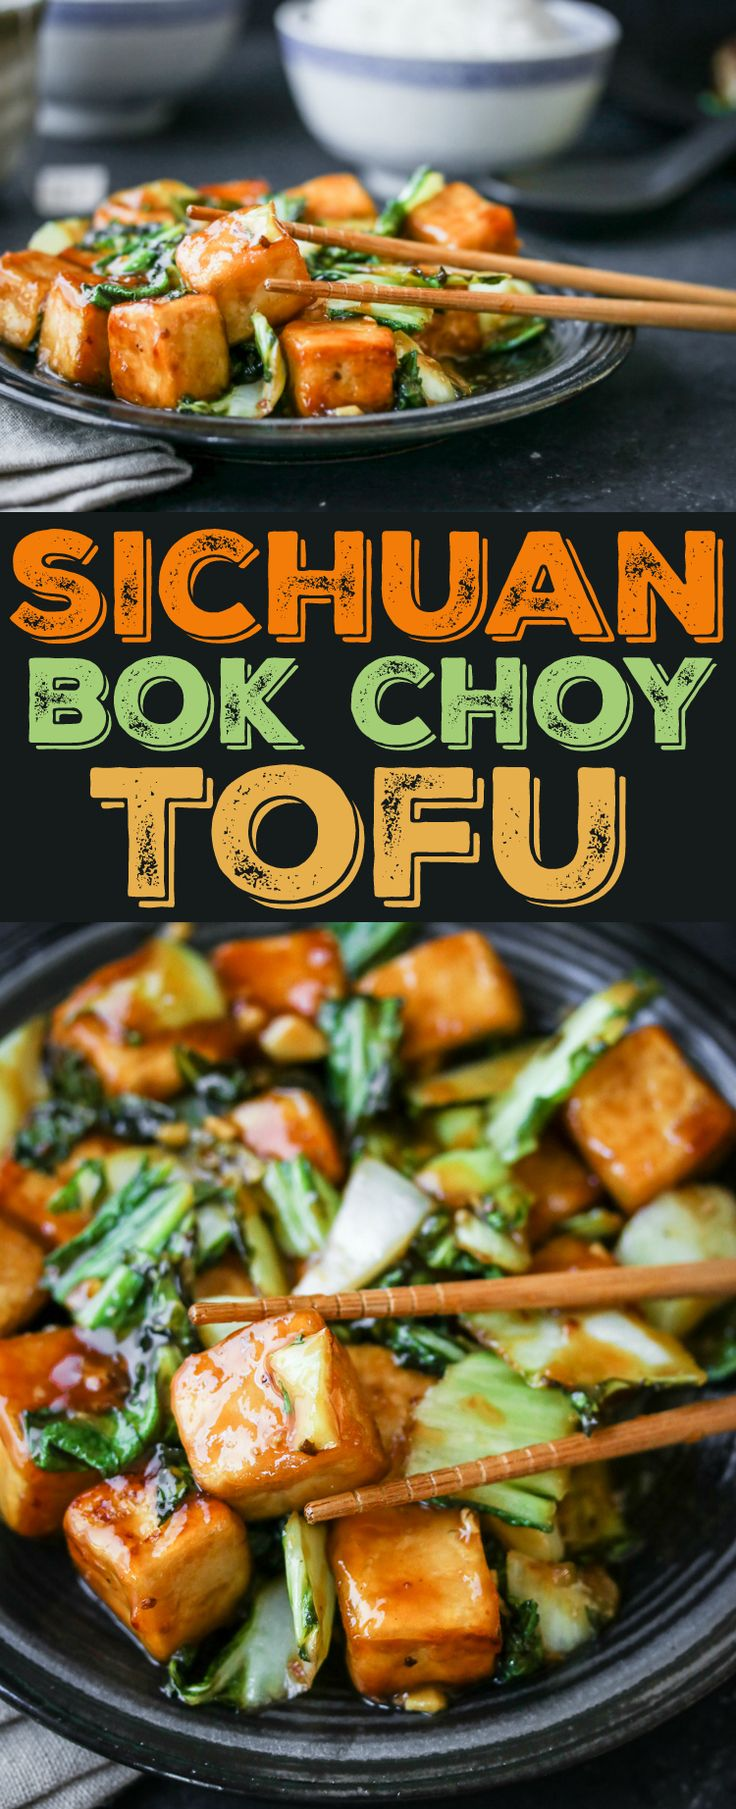 63624 best best food blogger recipes images on pinterest kitchens sichuan bok choy tofu stir fry vegetarian recipeshealthy forumfinder Image collections